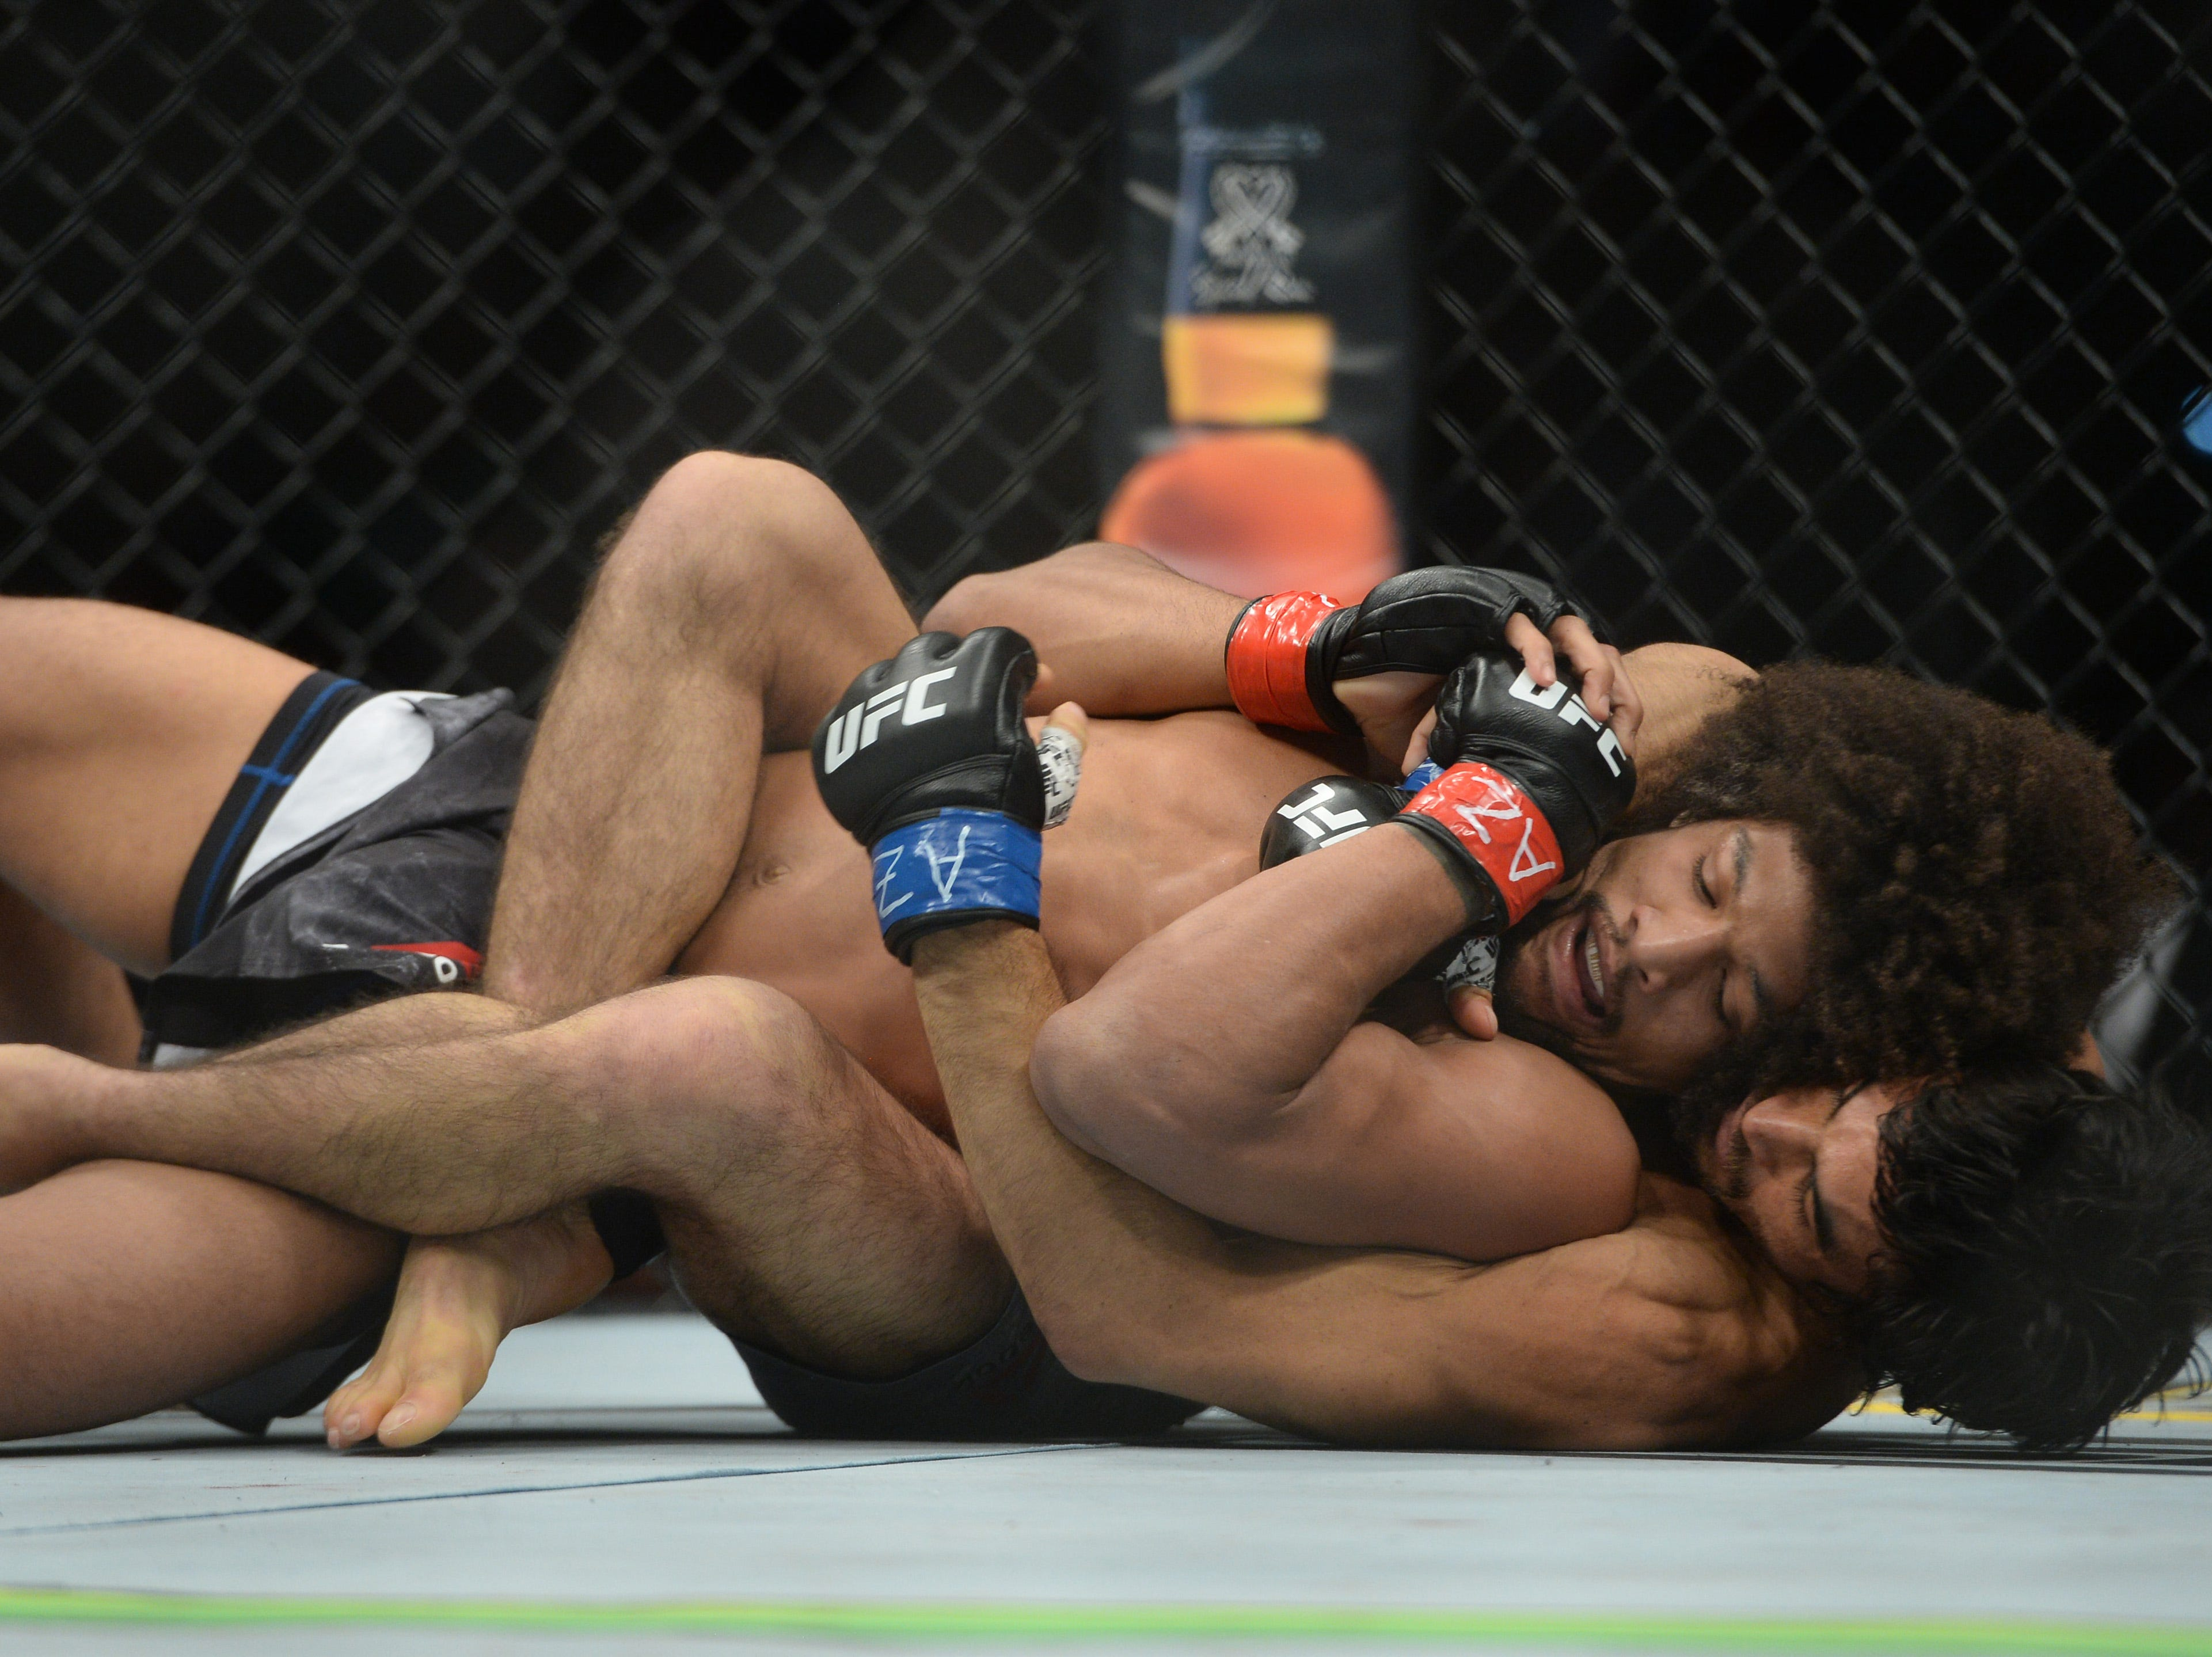 Kron Gracie wraps up Alex Caceres during their featherweight bout at UFC Fight Night at Talking Stick Resort Arena. Gracie won by submission in the first round.